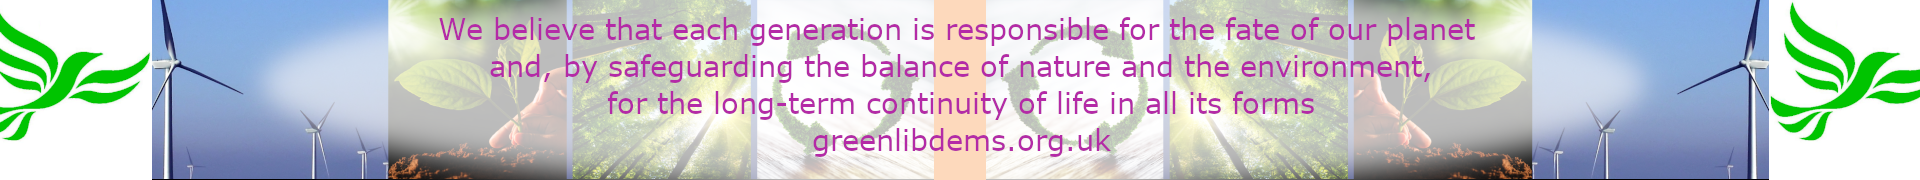 GLD banner with constitution text about our beliefs 2021 (greenlibdems.org.uk)